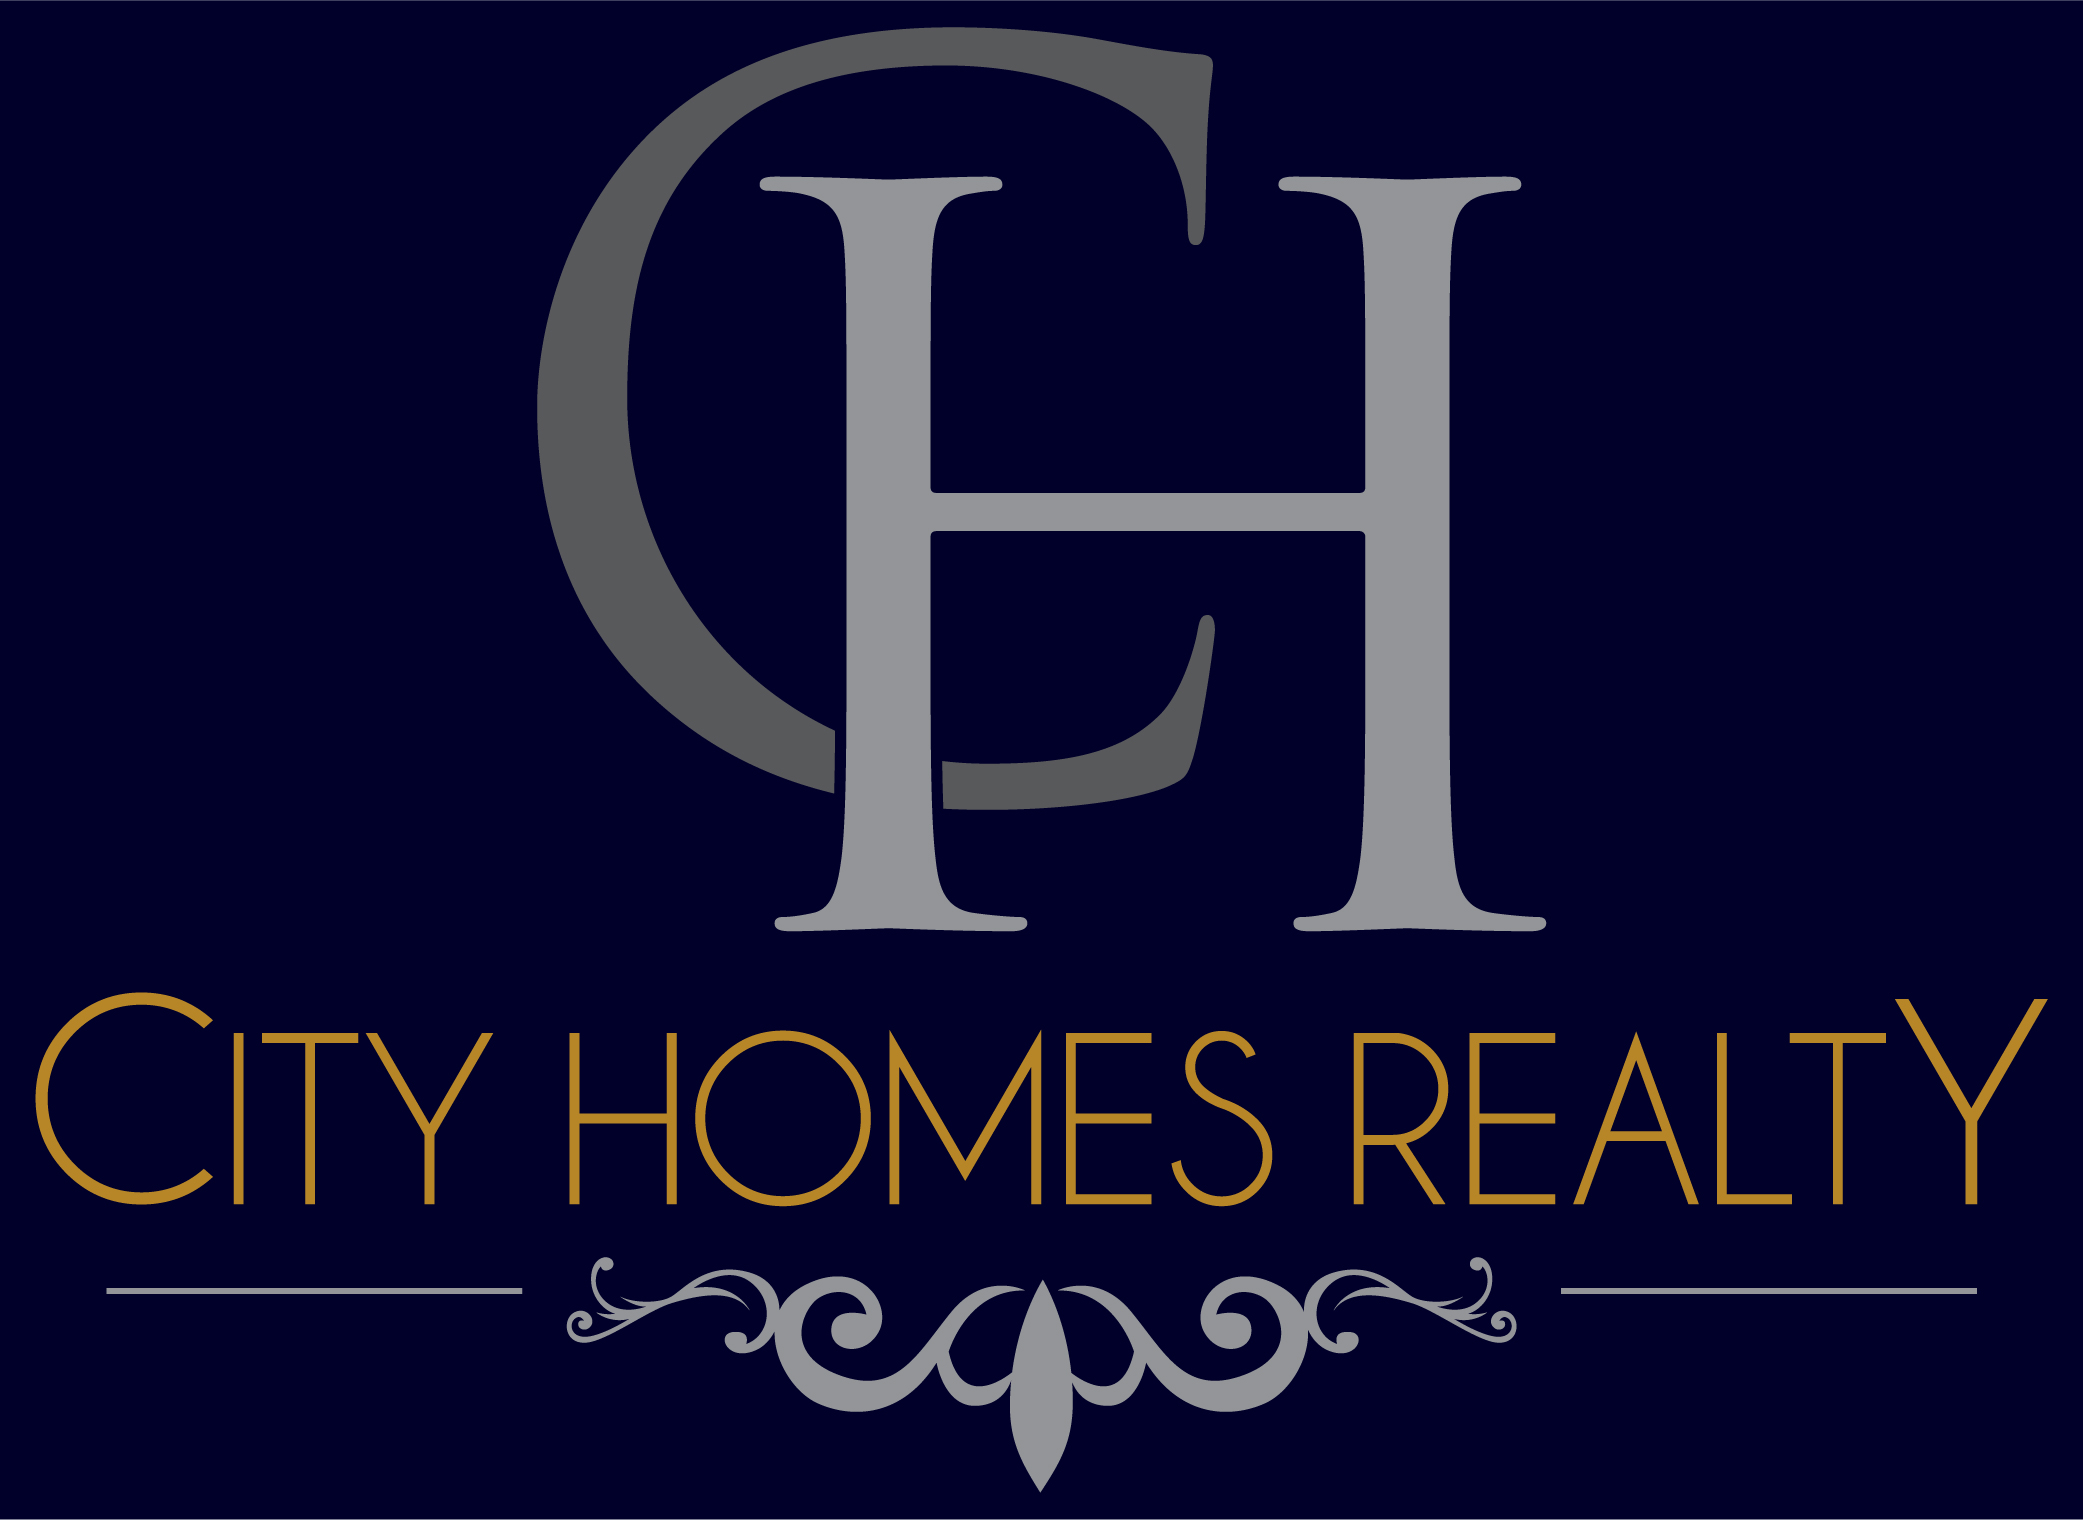 City Homes Realty Group LLC